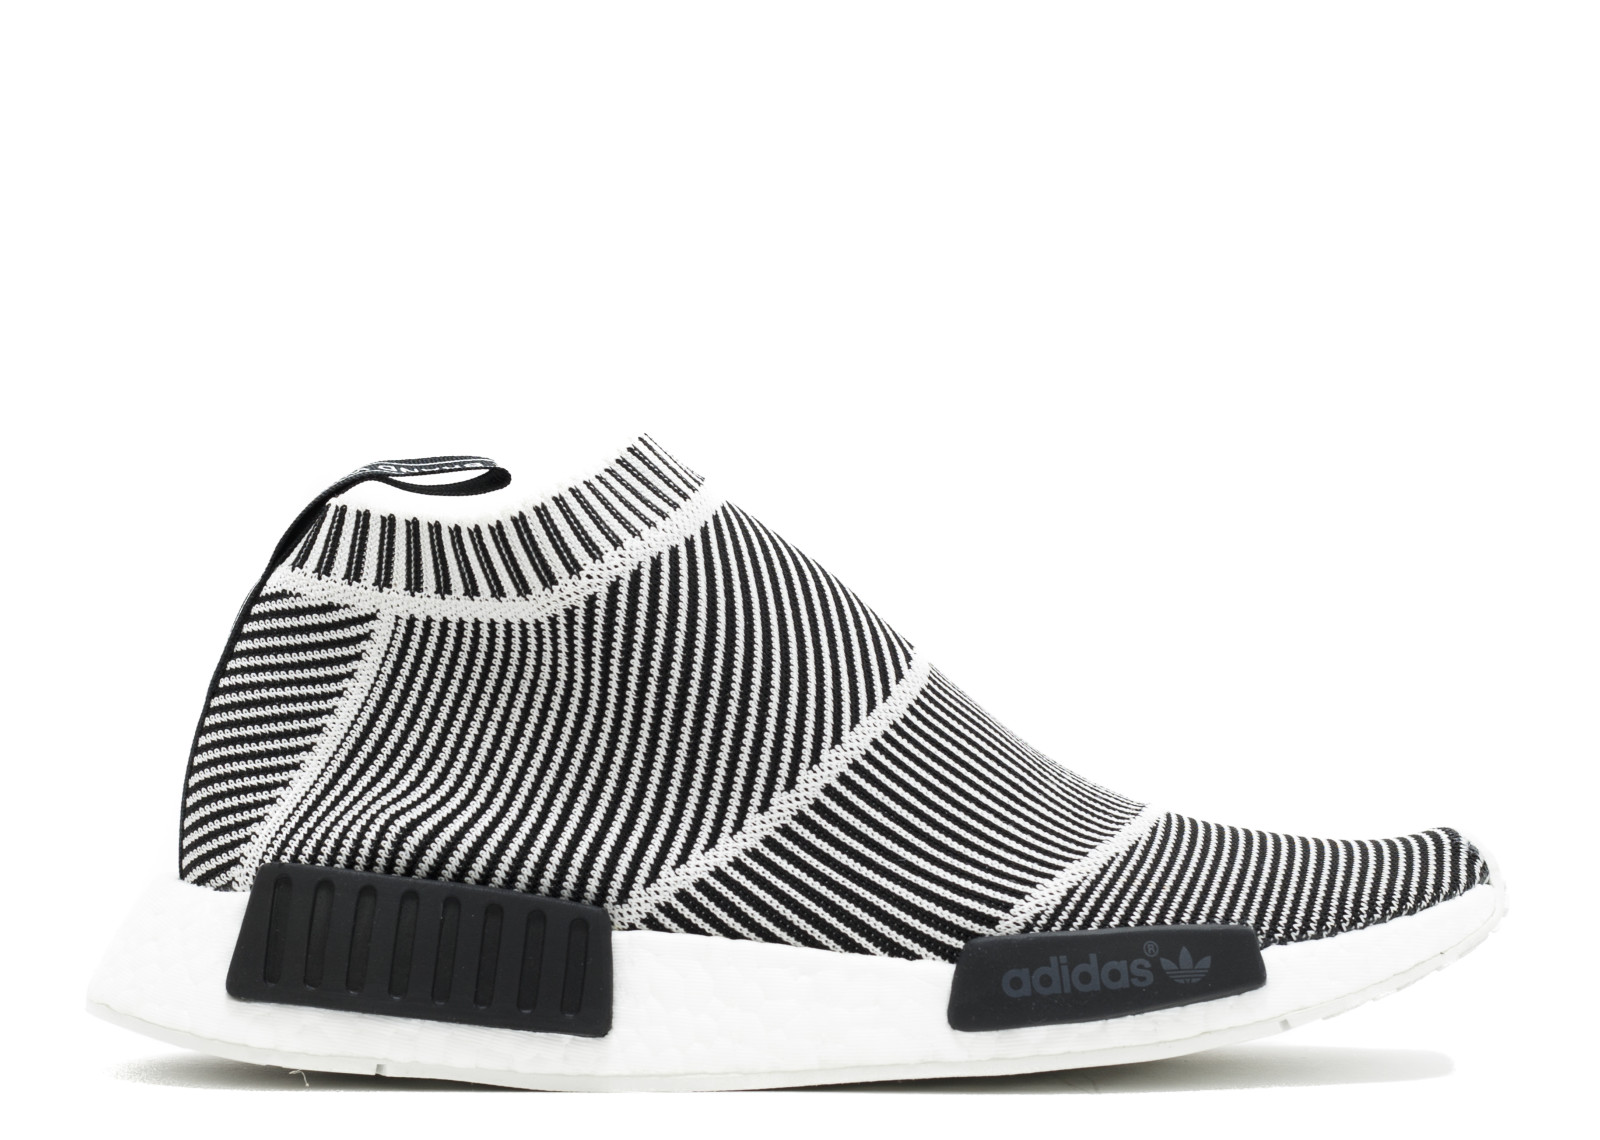 Kick Avenue Adidas Nmd R1 Japan Black 2019